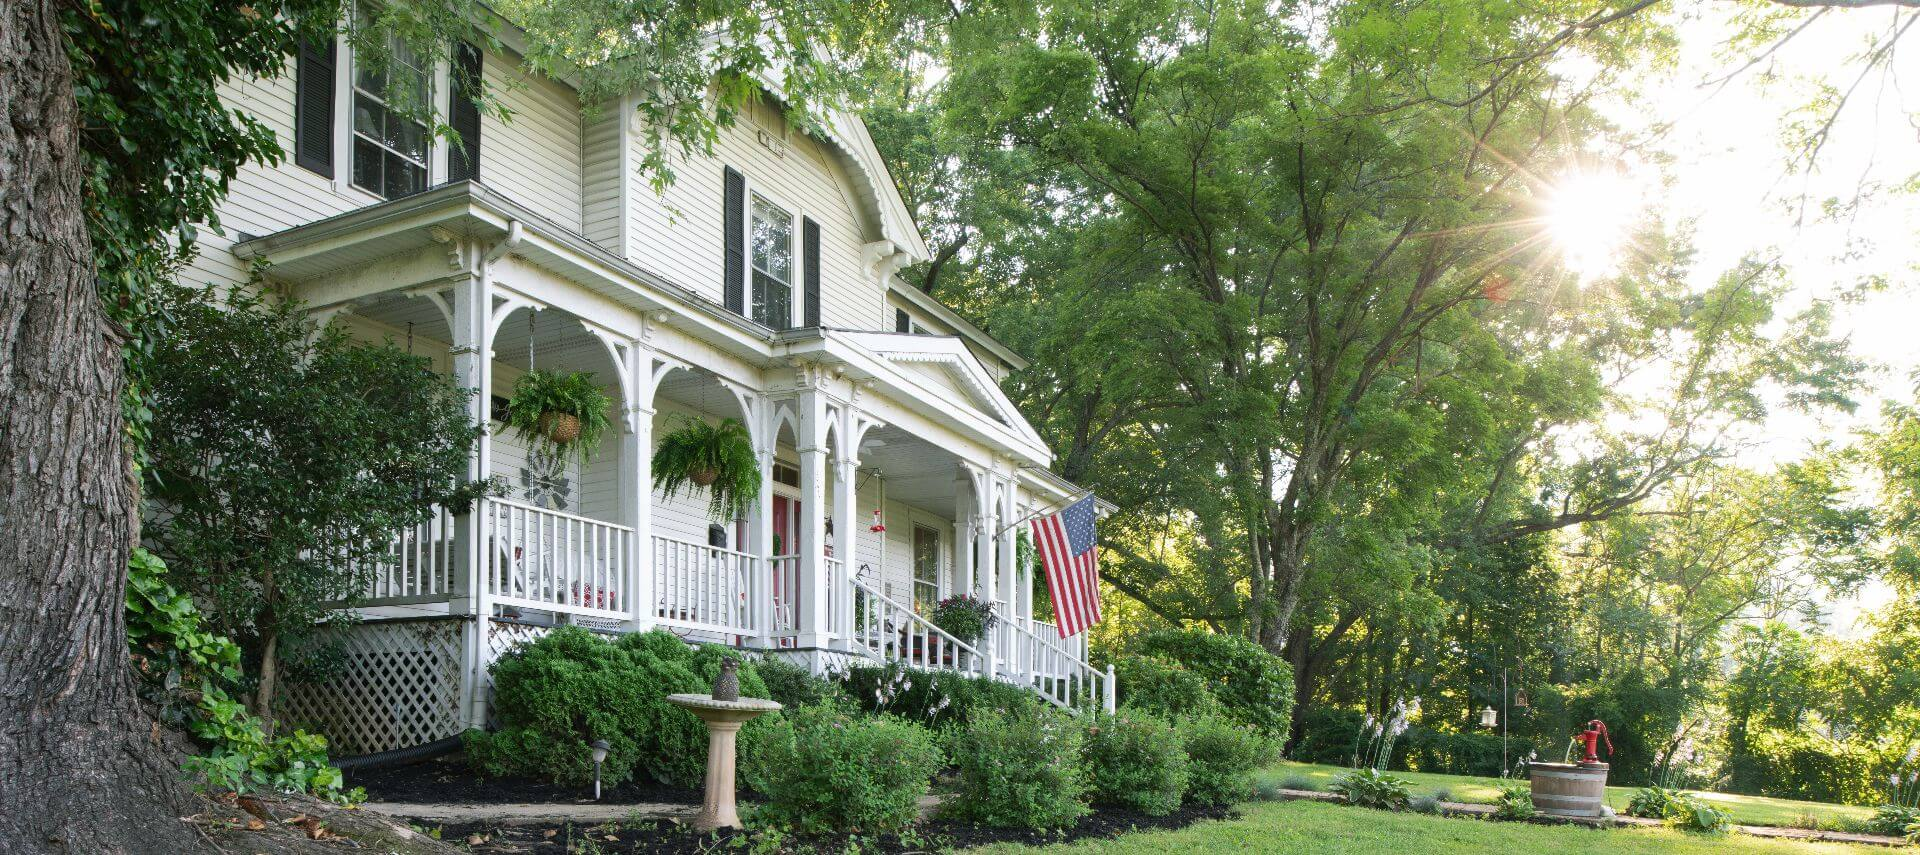 White manor hosue with large sitting porch flying the American flag during summer.